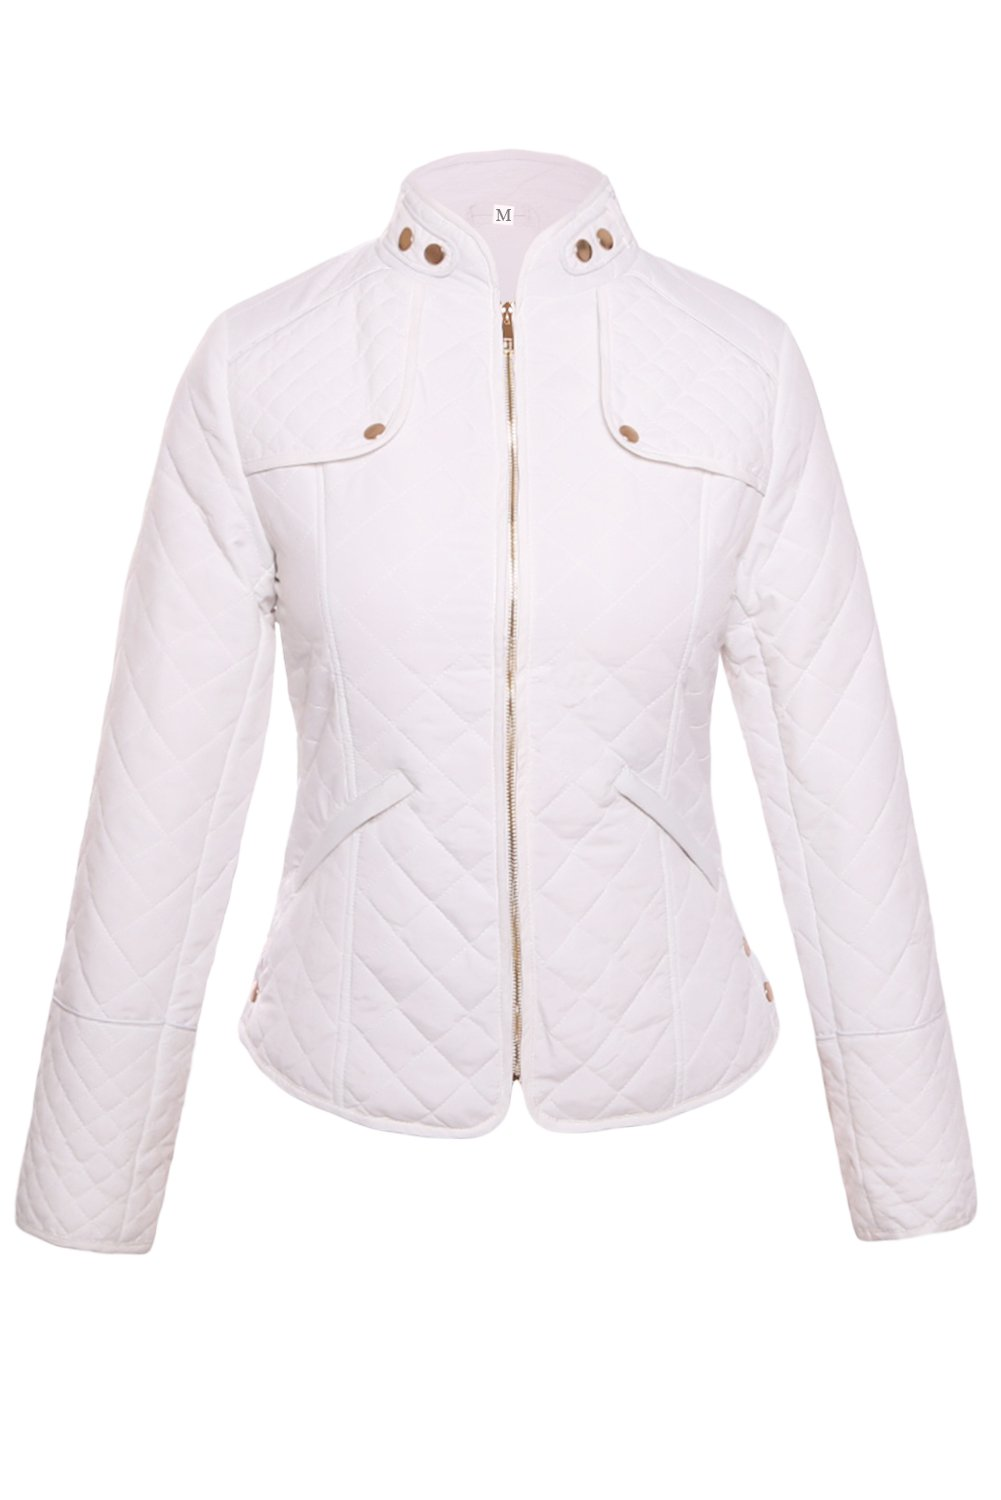 White Diamond Plaid Quilted Cotton Jacket